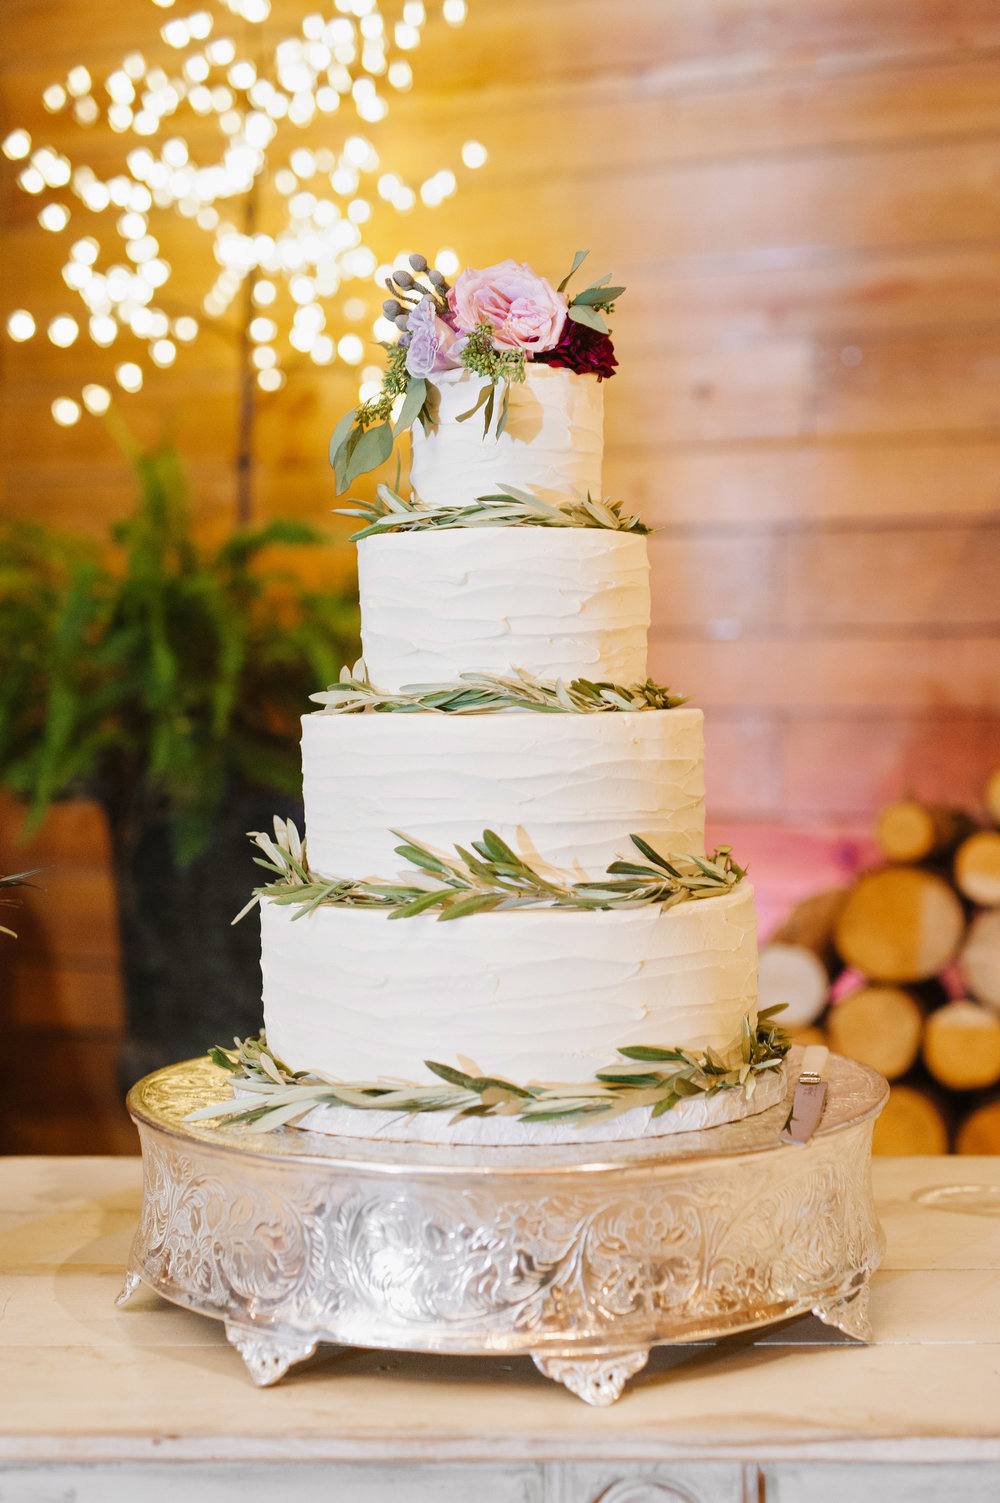 Dallas Bakery Wedding Cakes